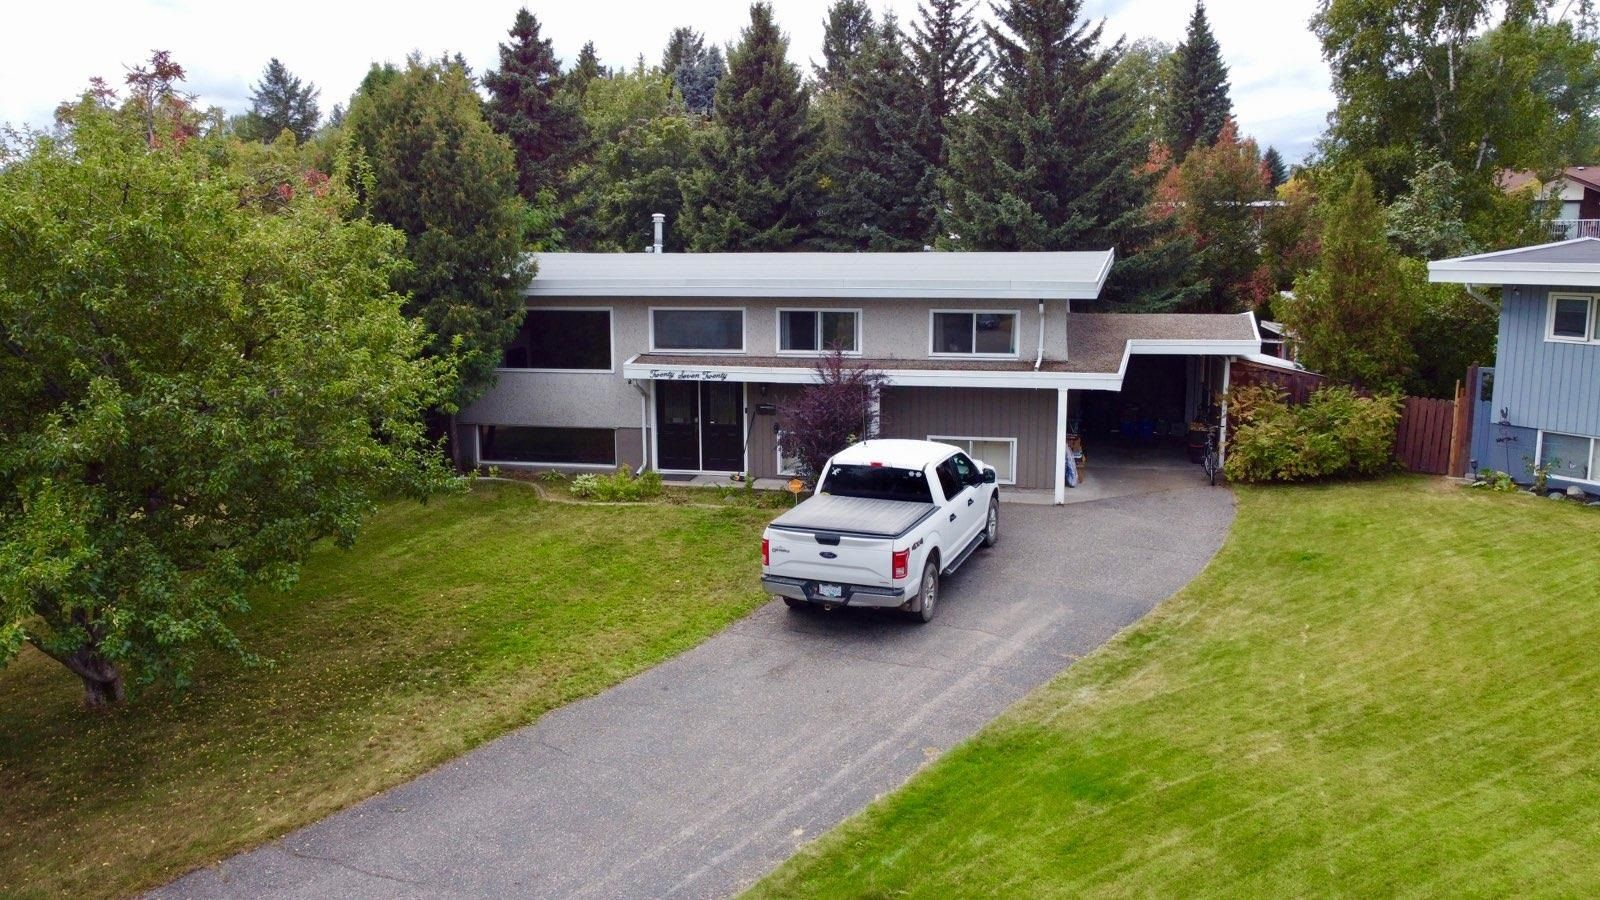 """Main Photo: 2720 EWERT Crescent in Prince George: Seymour House for sale in """"SEYMOUR"""" (PG City Central (Zone 72))  : MLS®# R2616321"""